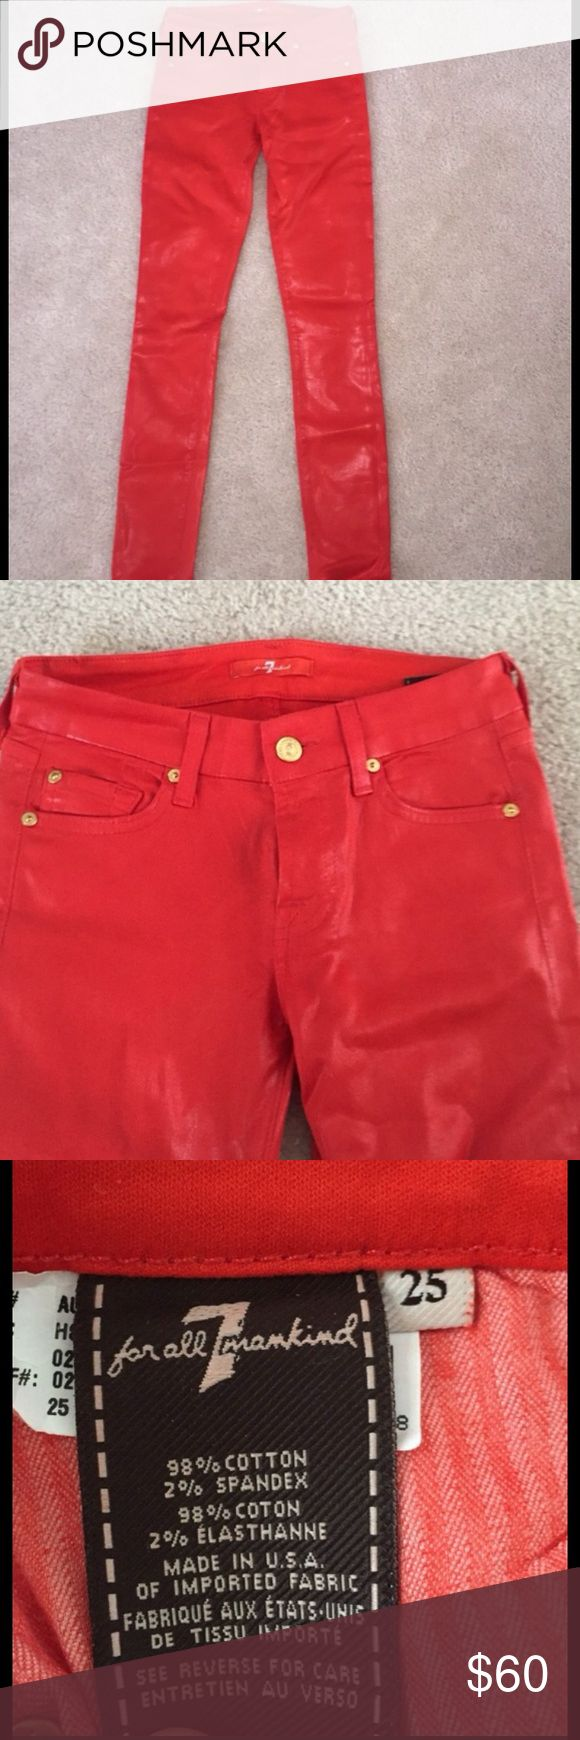 7 For All Mankind Leather orange skinny jeans Leather orange red skinny jeans WORN ONCE practically brand new! 7 For All Mankind Jeans Skinny